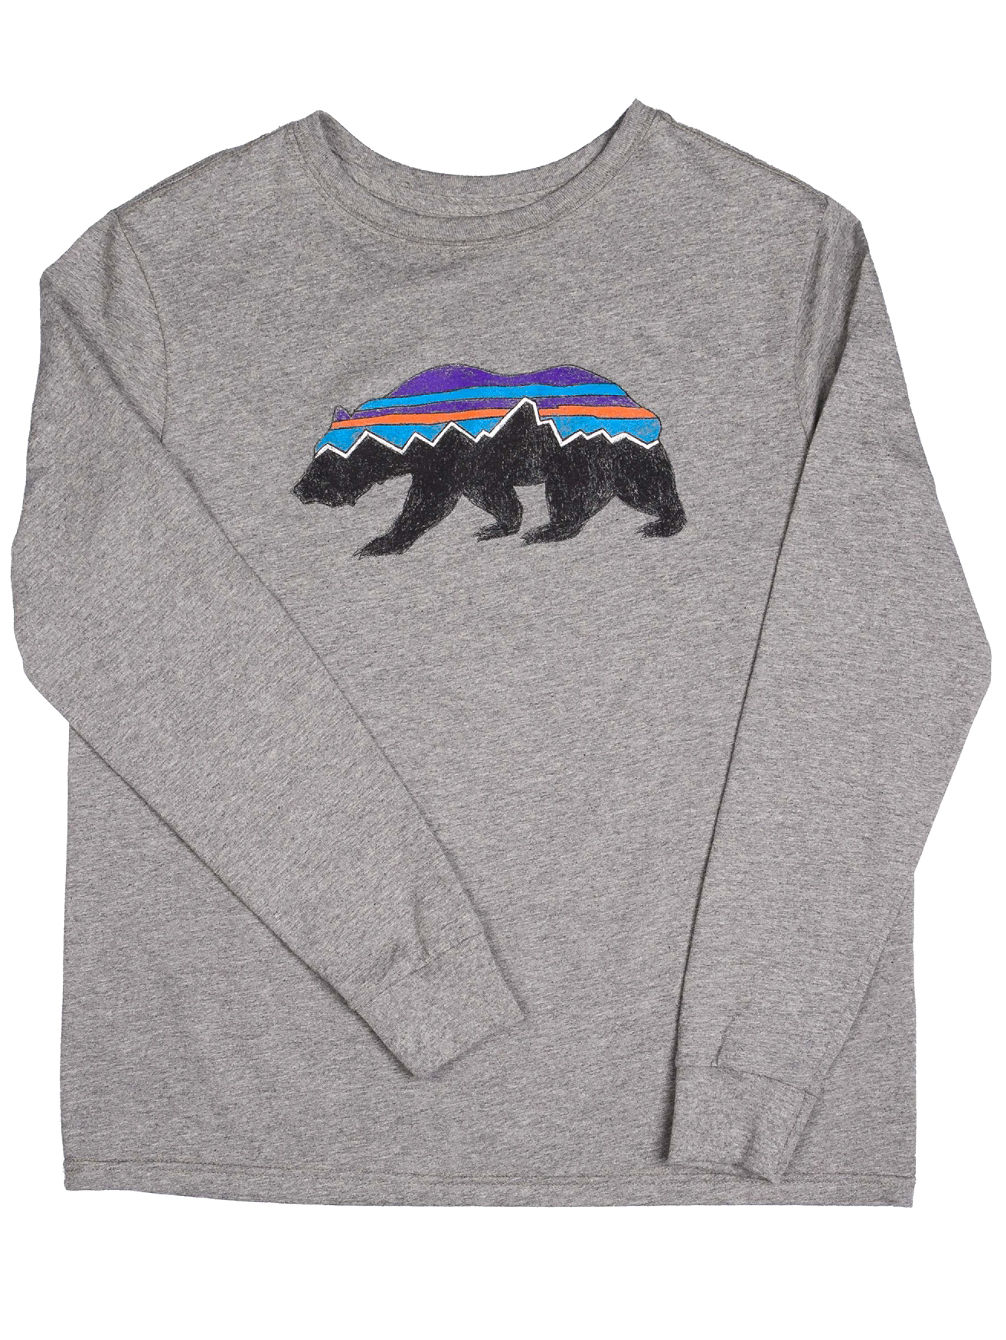 Graphic Organic Long Sleeve T-Shirt